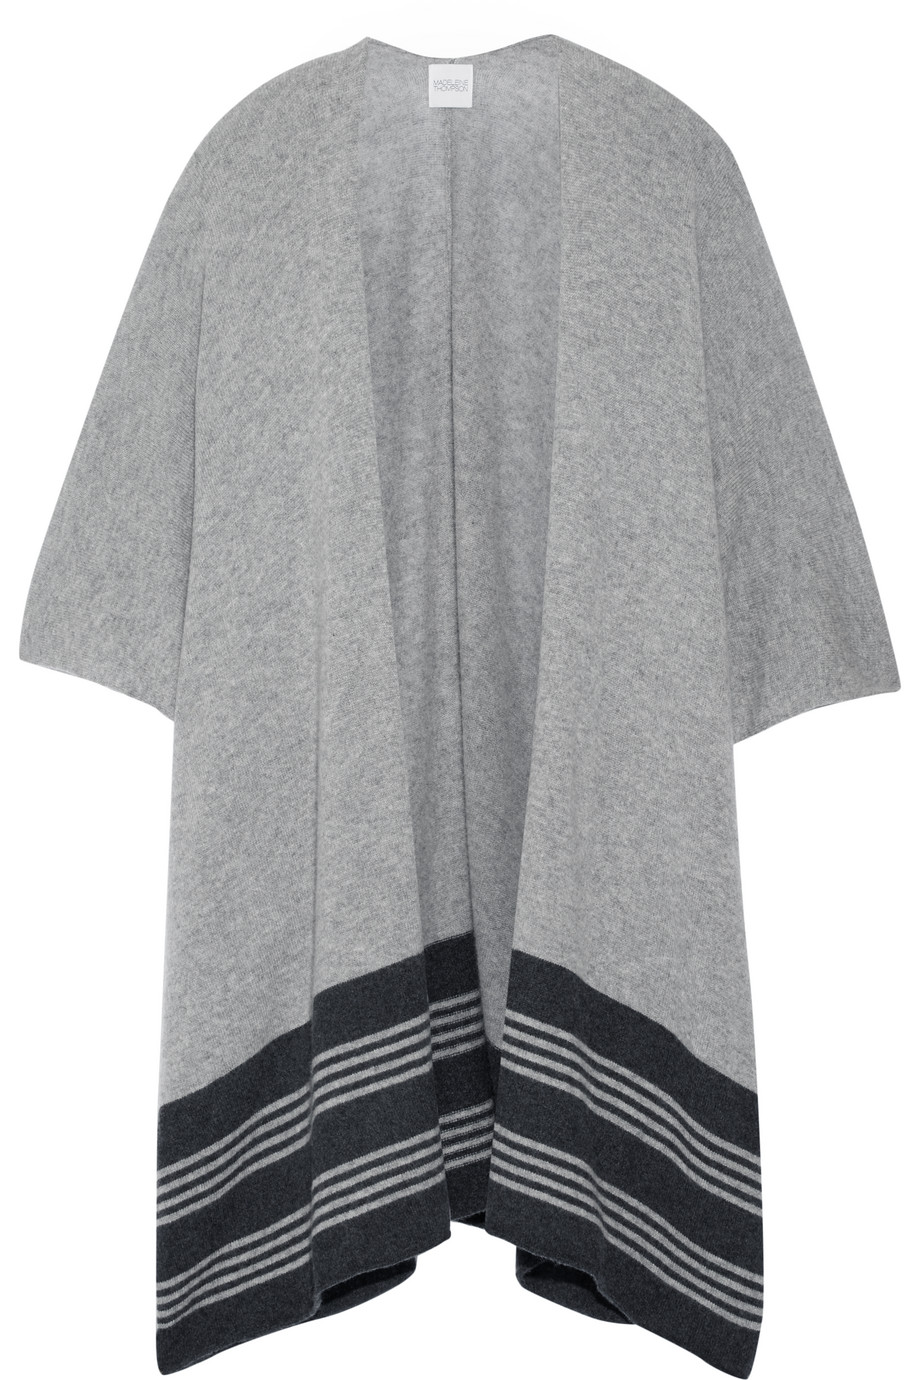 Marrick Striped Cashmere Wrap, Madeleine Thompson, Gray, Women's